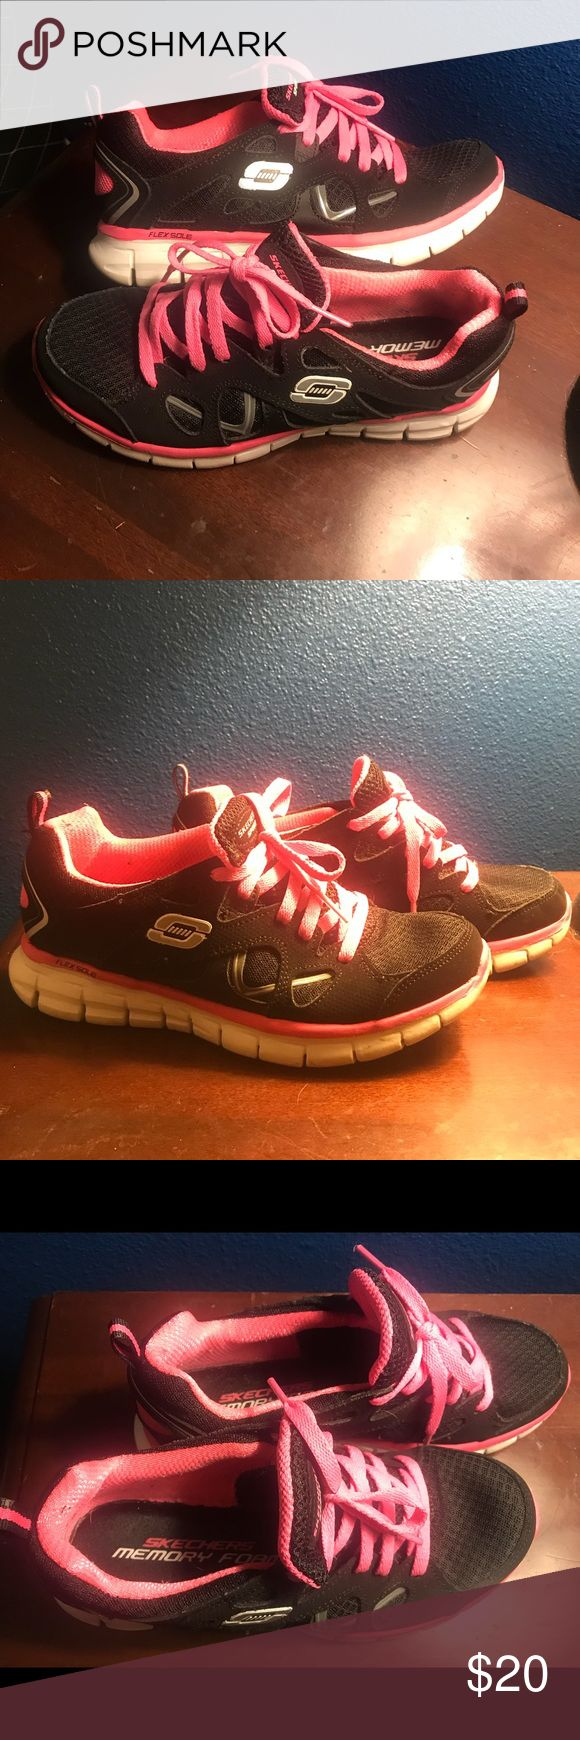 Skechers Memory Foam Sneakers Athletic Shoes EUC Hot pink and Black Sketchers with Memory Foam. Size 5.5 in Women's. Super comfortable athletic shoes in superb condition.  These were just a little bit small for me. Sketchers Shoes Athletic Shoes